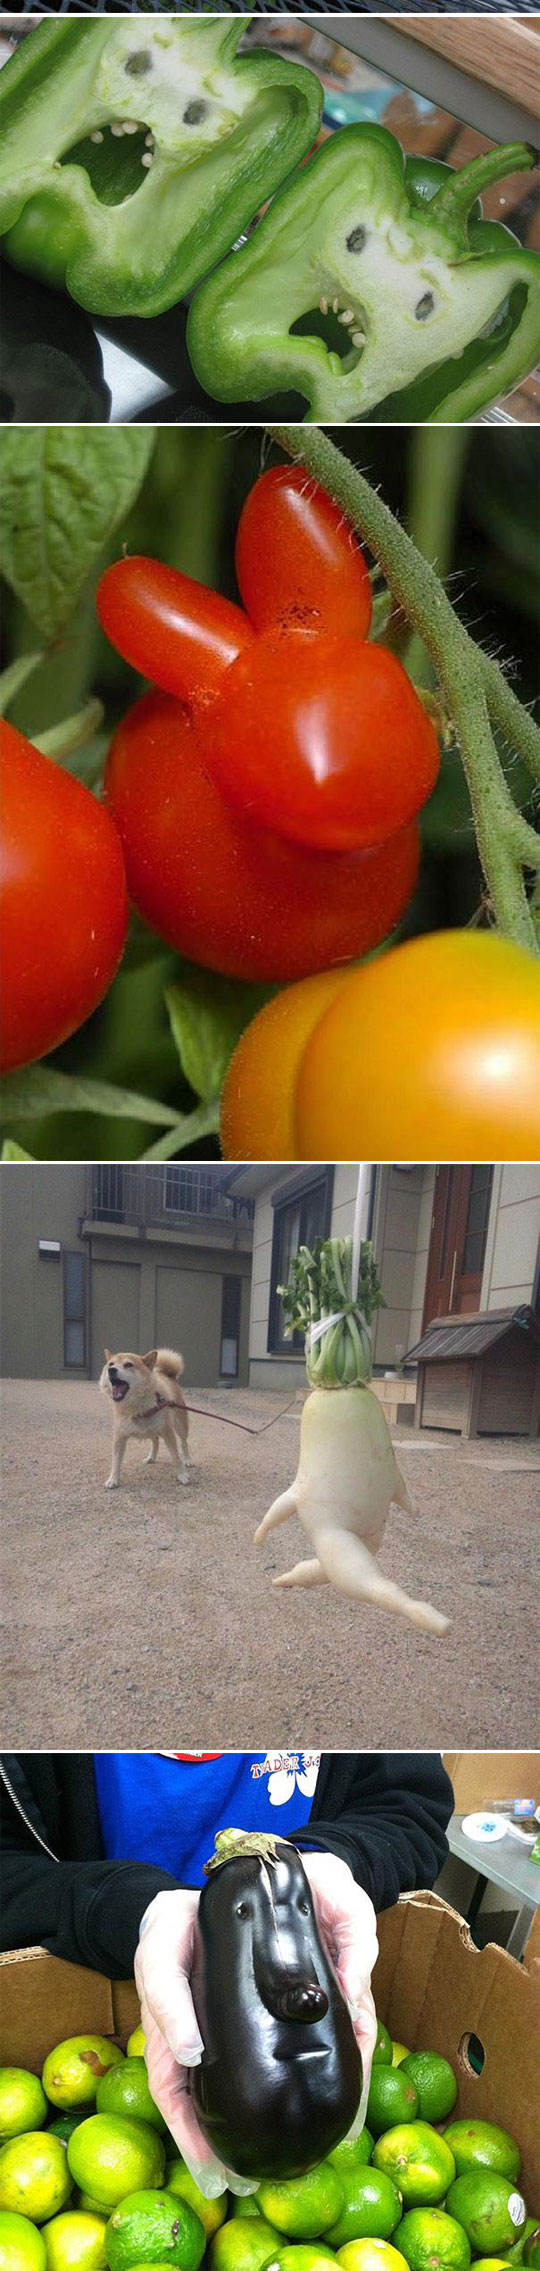 funny-shaped-vegetables-fruits-animals-tomato